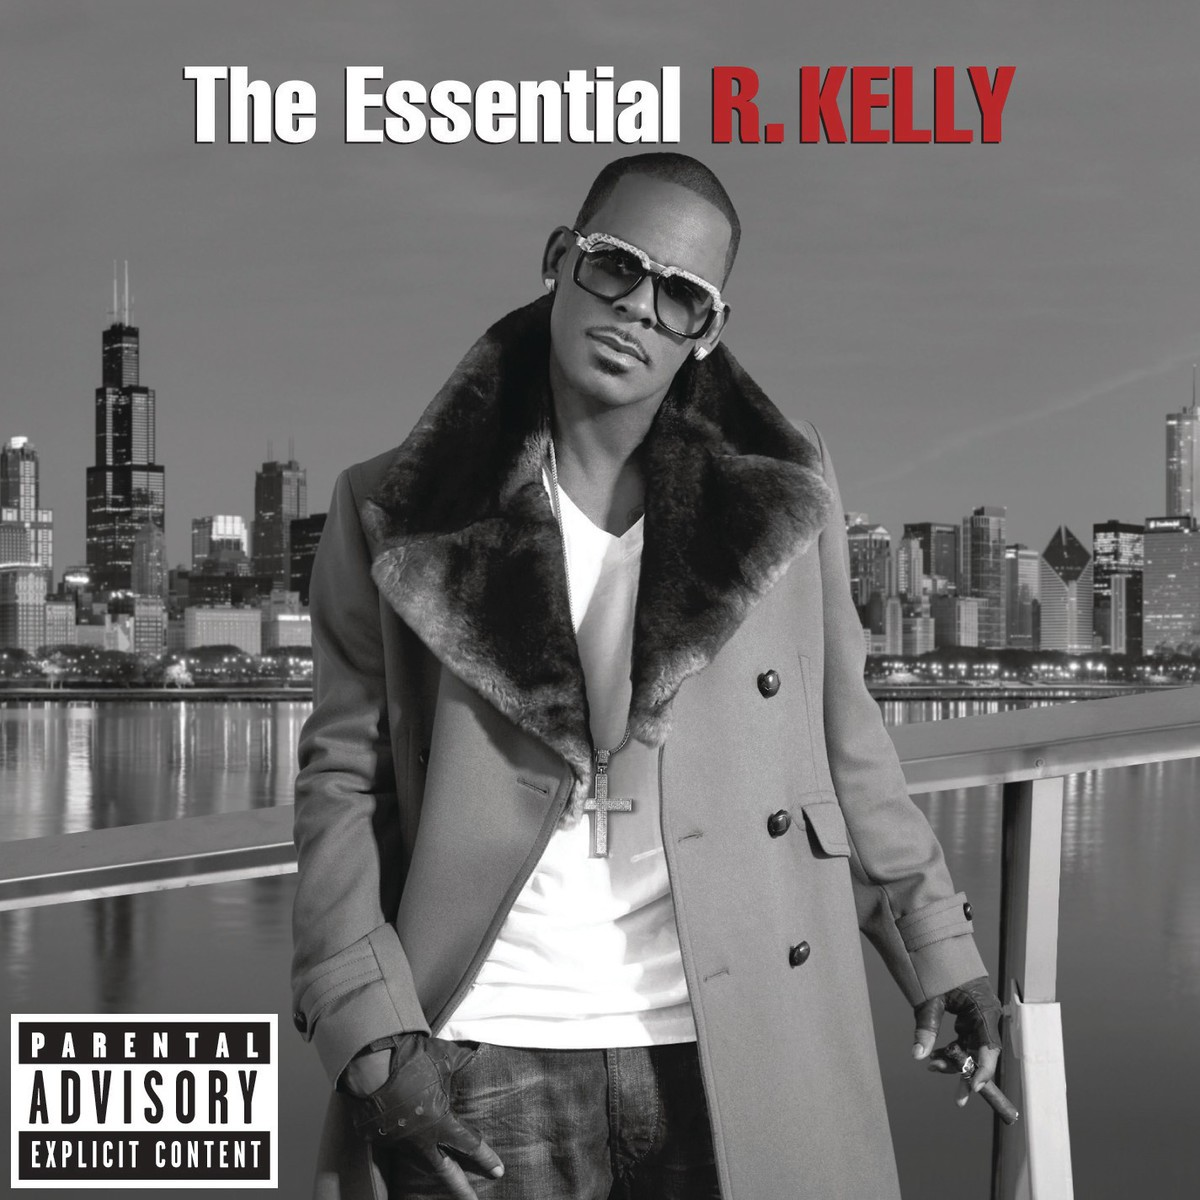 R. Kelly - The Essential (Explicit) CD - CDJAY273